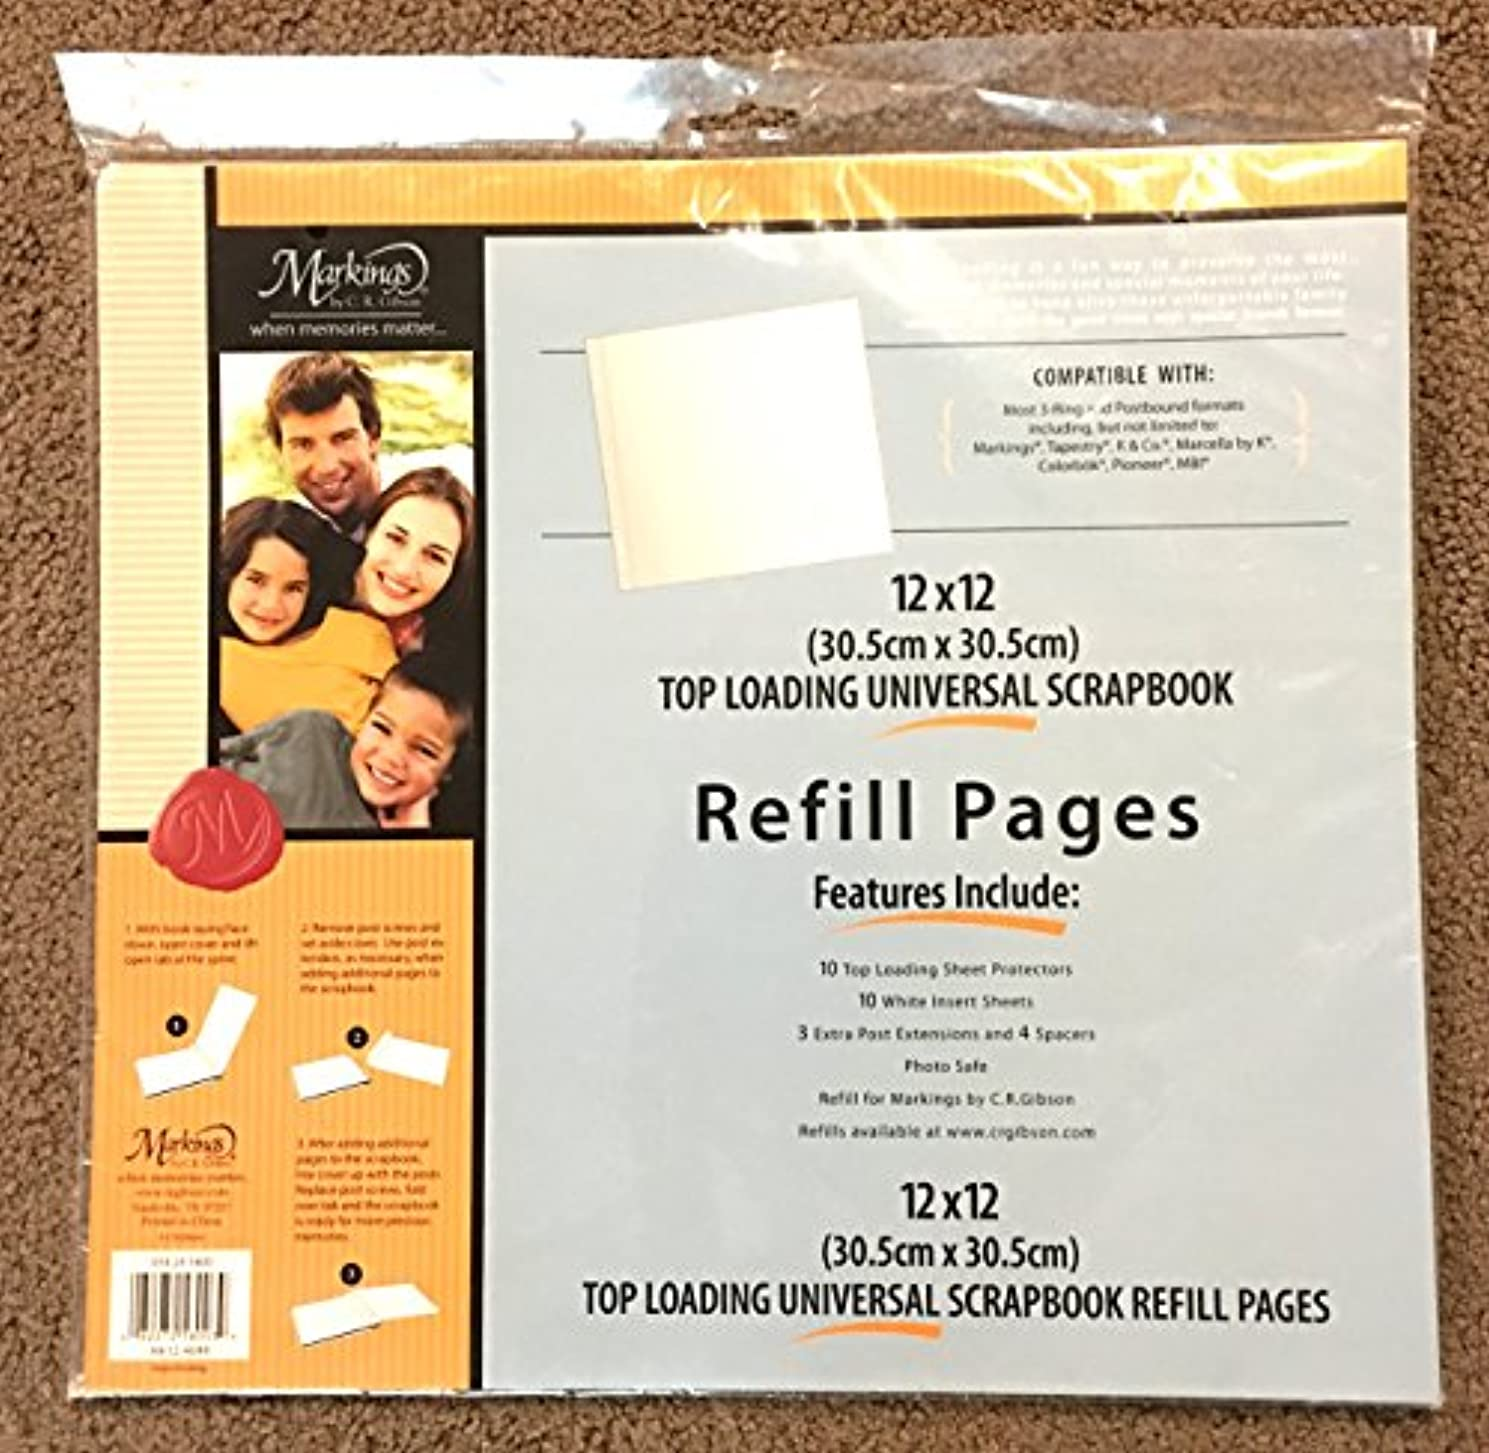 12 x 12 Top Loading Universal Scrapbook Refill Pages